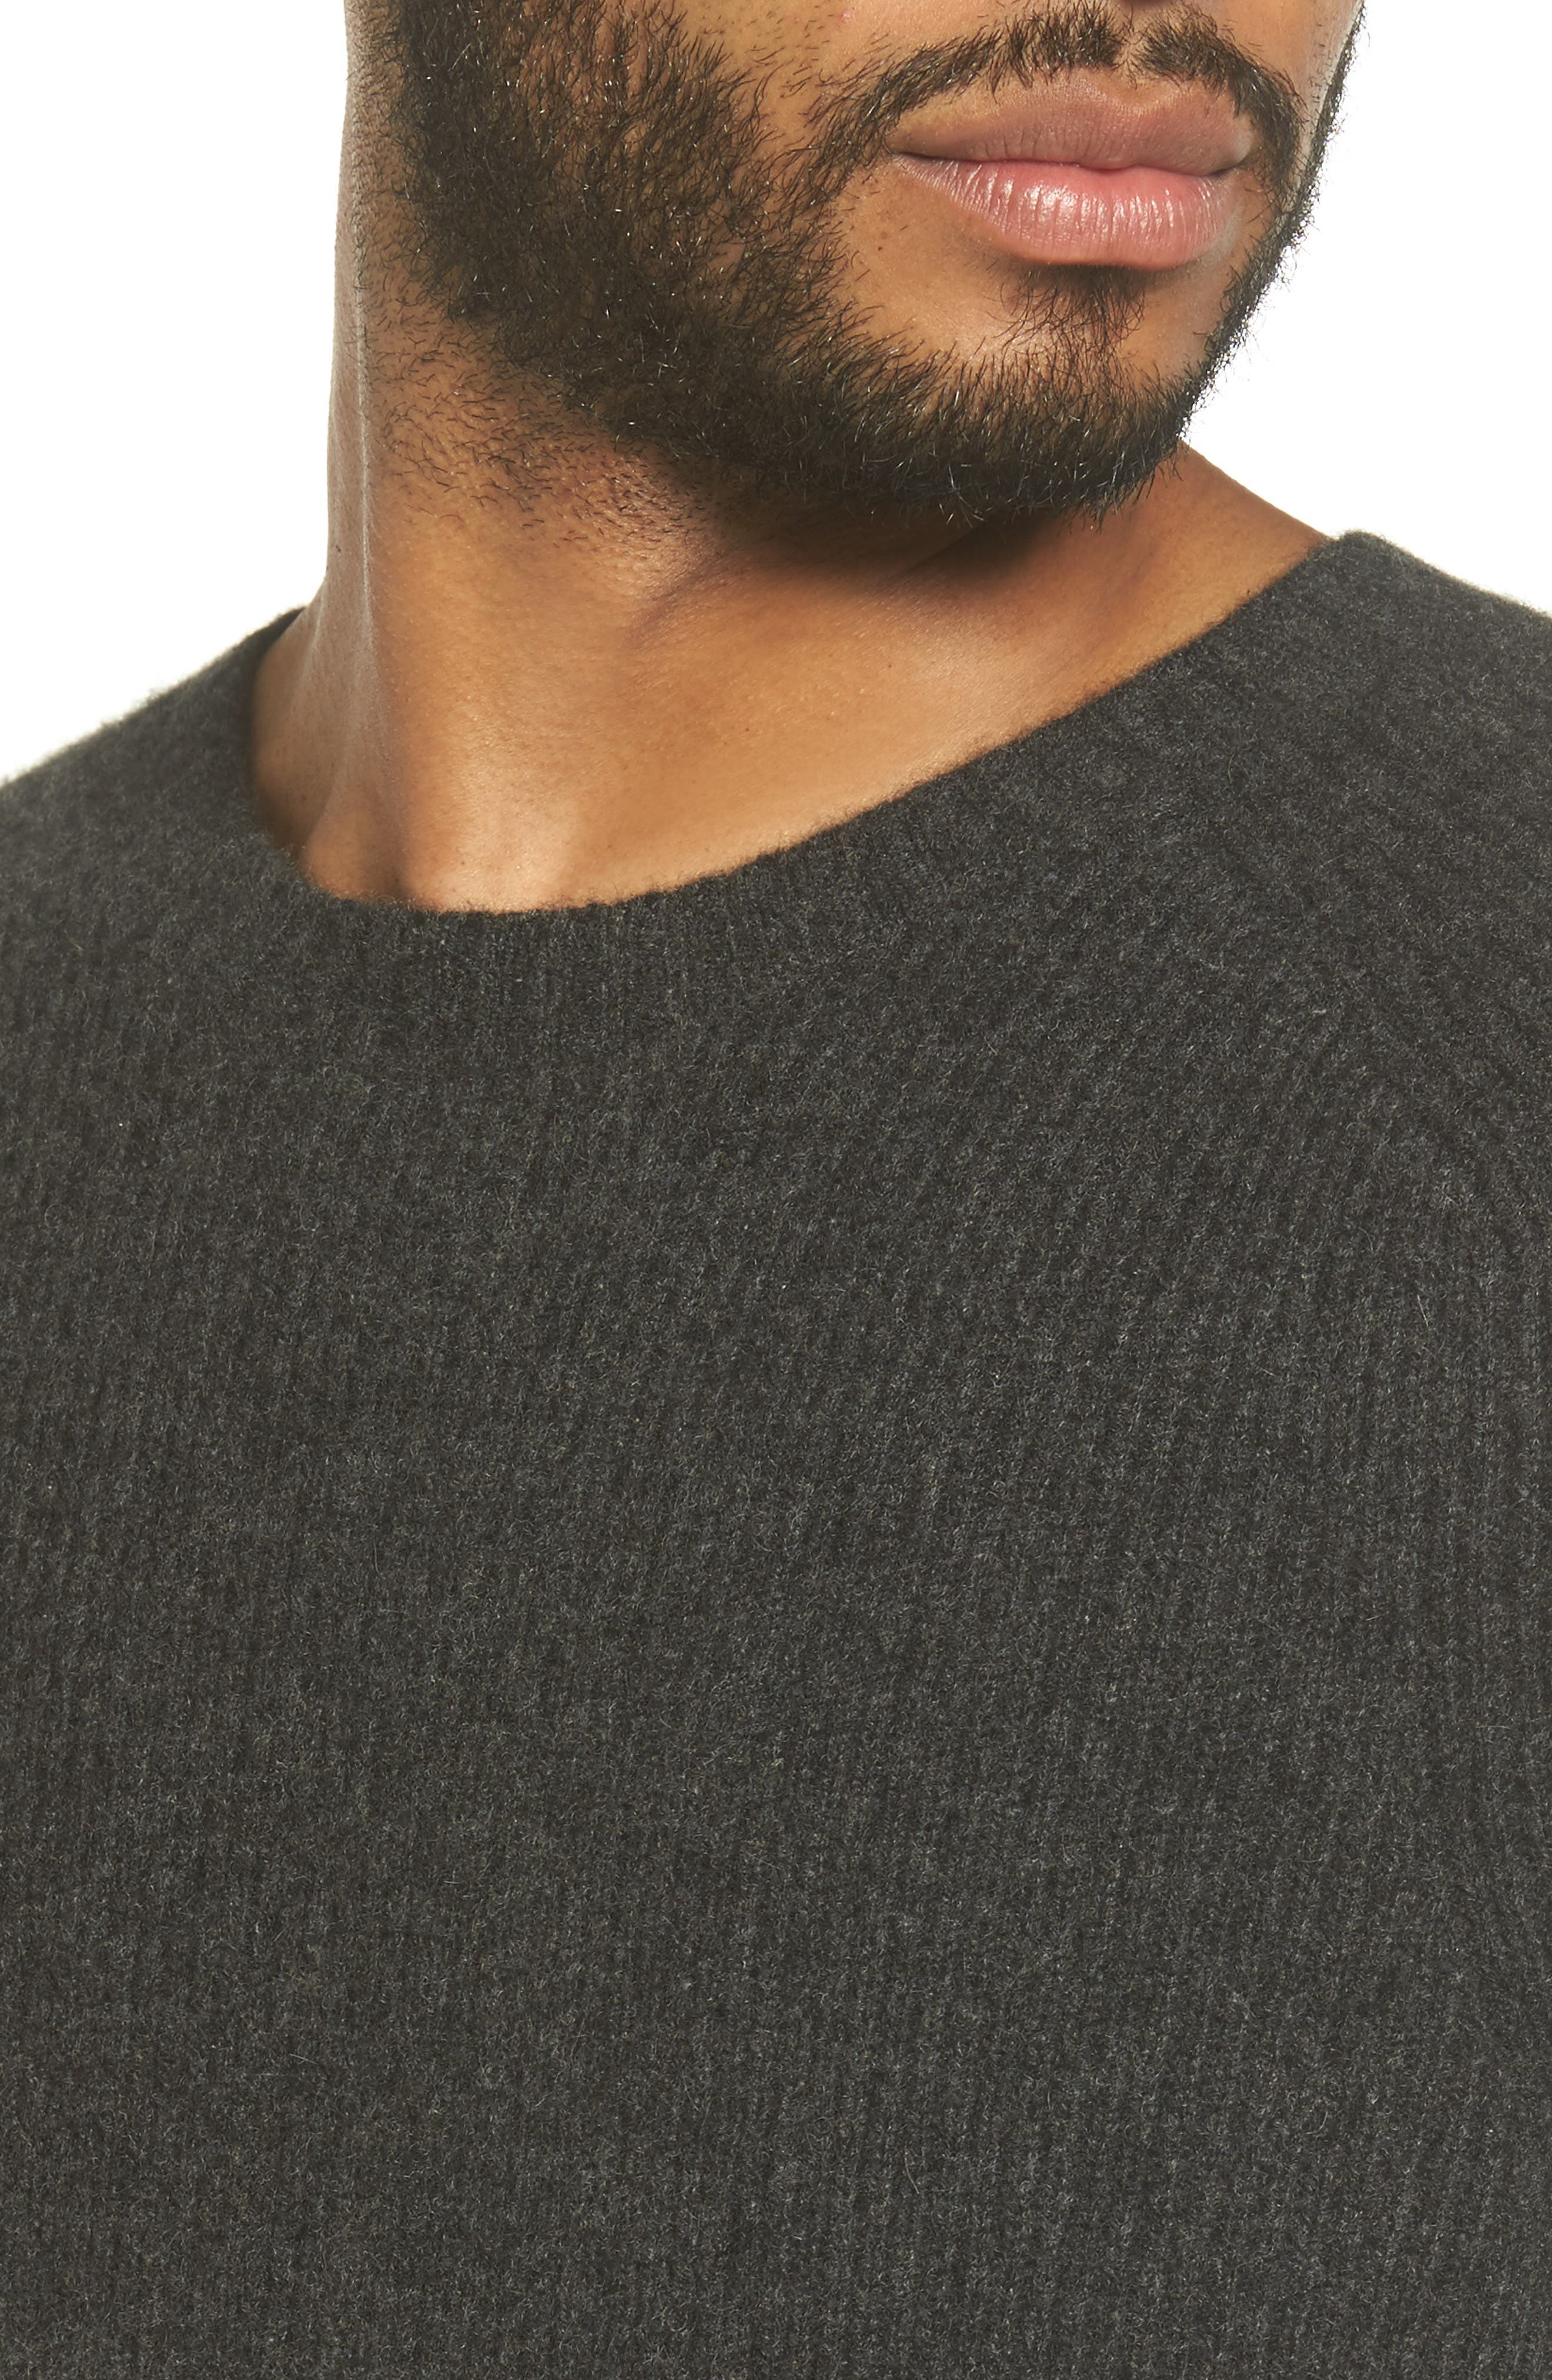 Ribbed Wool & Cashmere Raglan Sweater,                             Alternate thumbnail 4, color,                             Heather Carbon